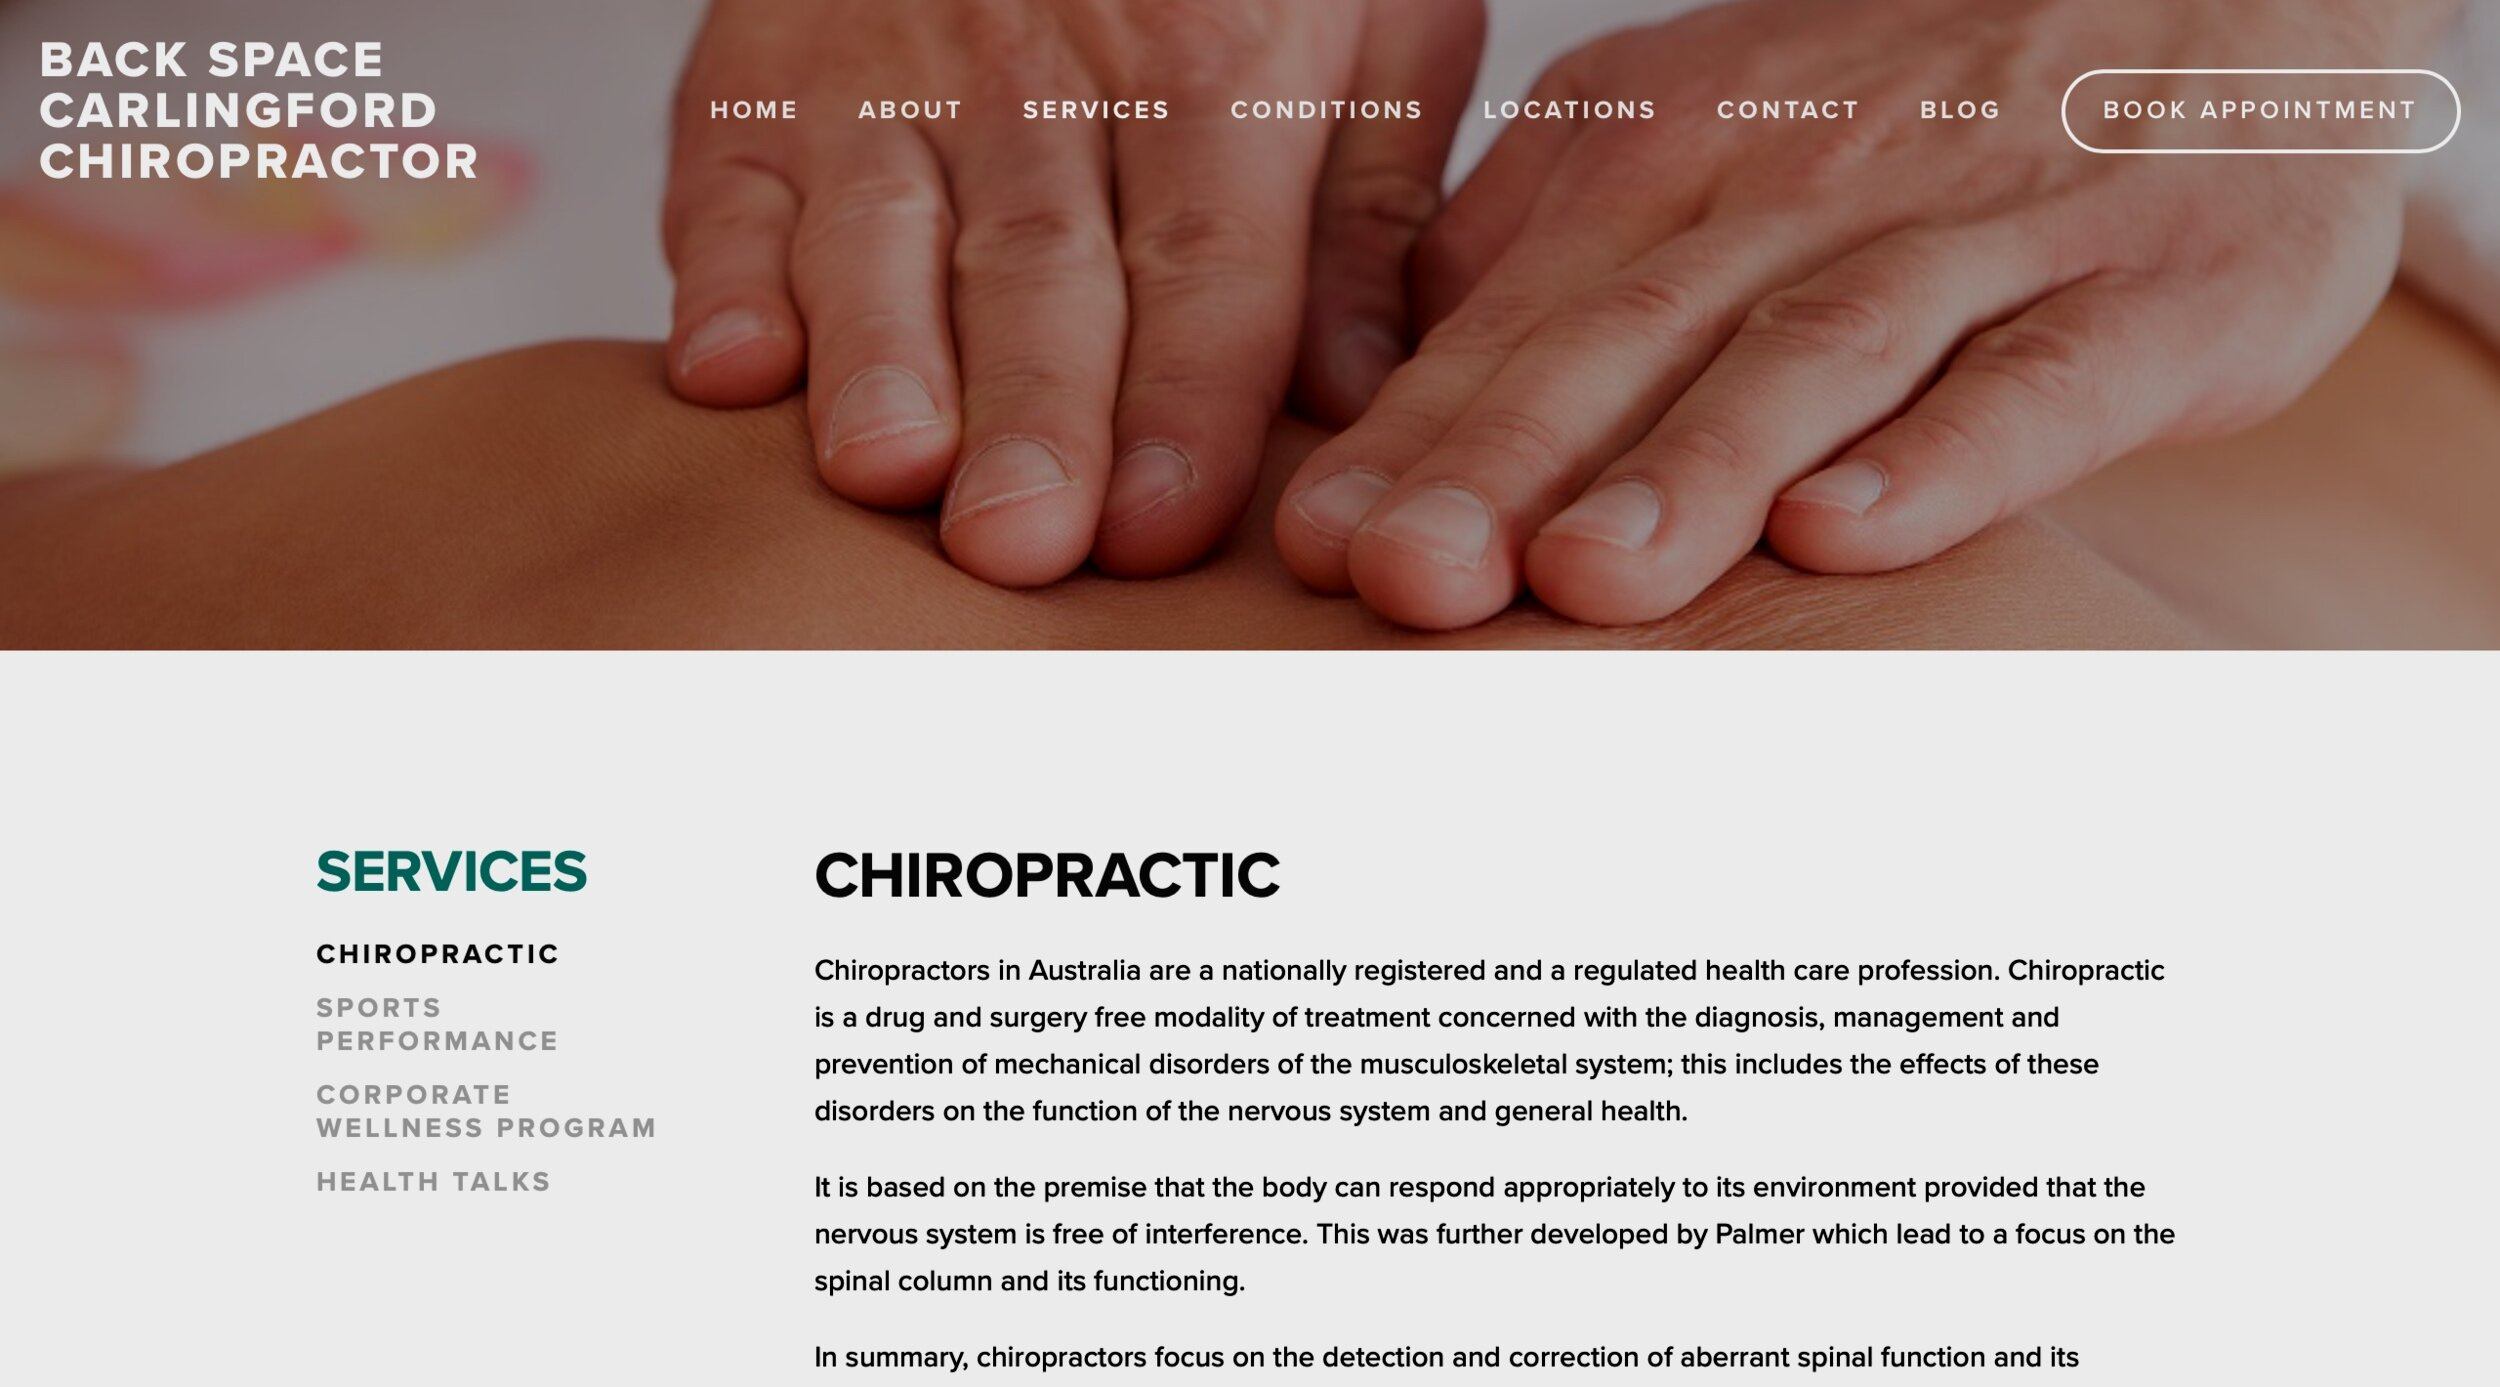 back space chiropractor -